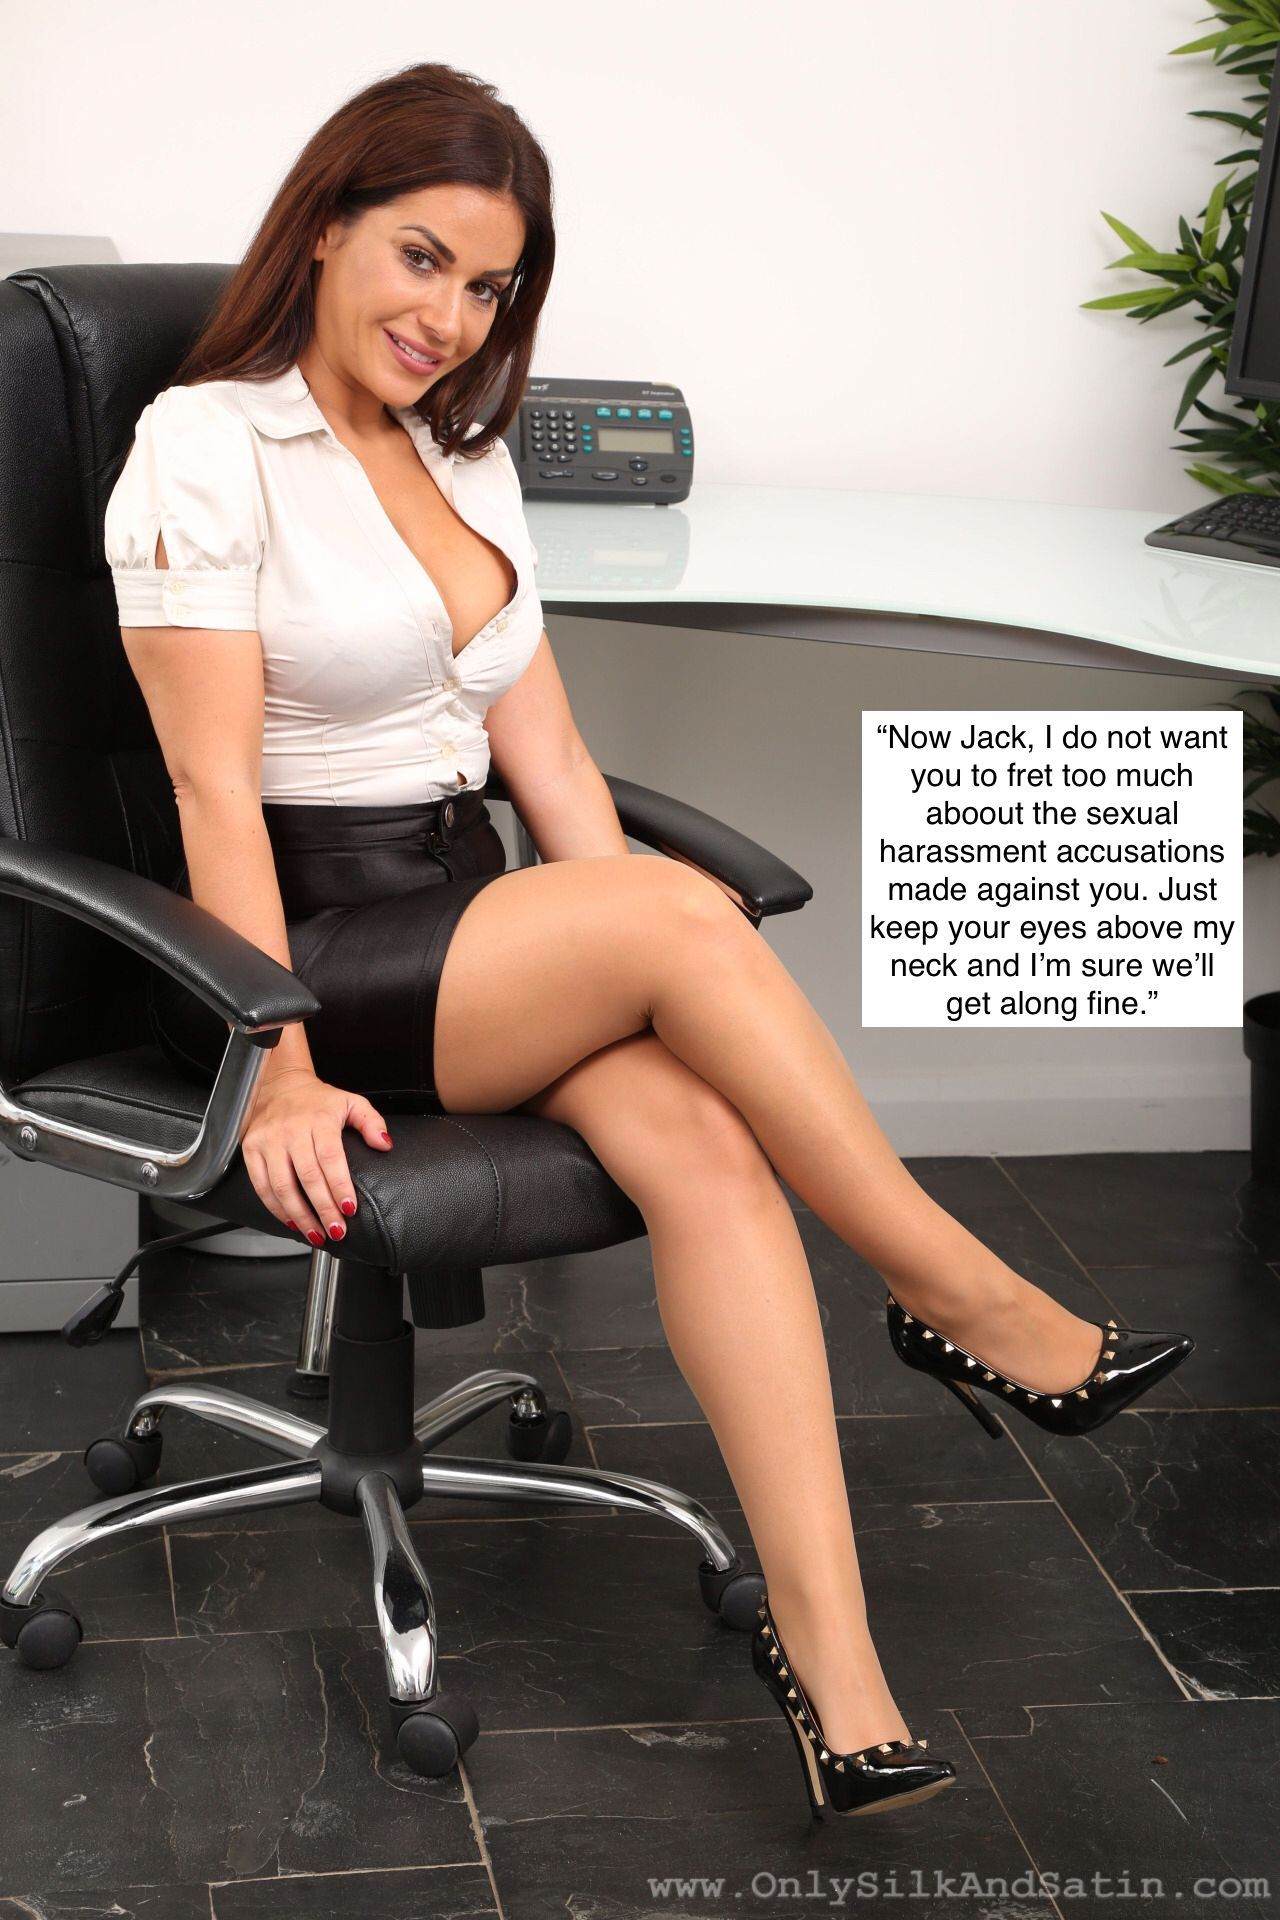 Femdom in the workplace